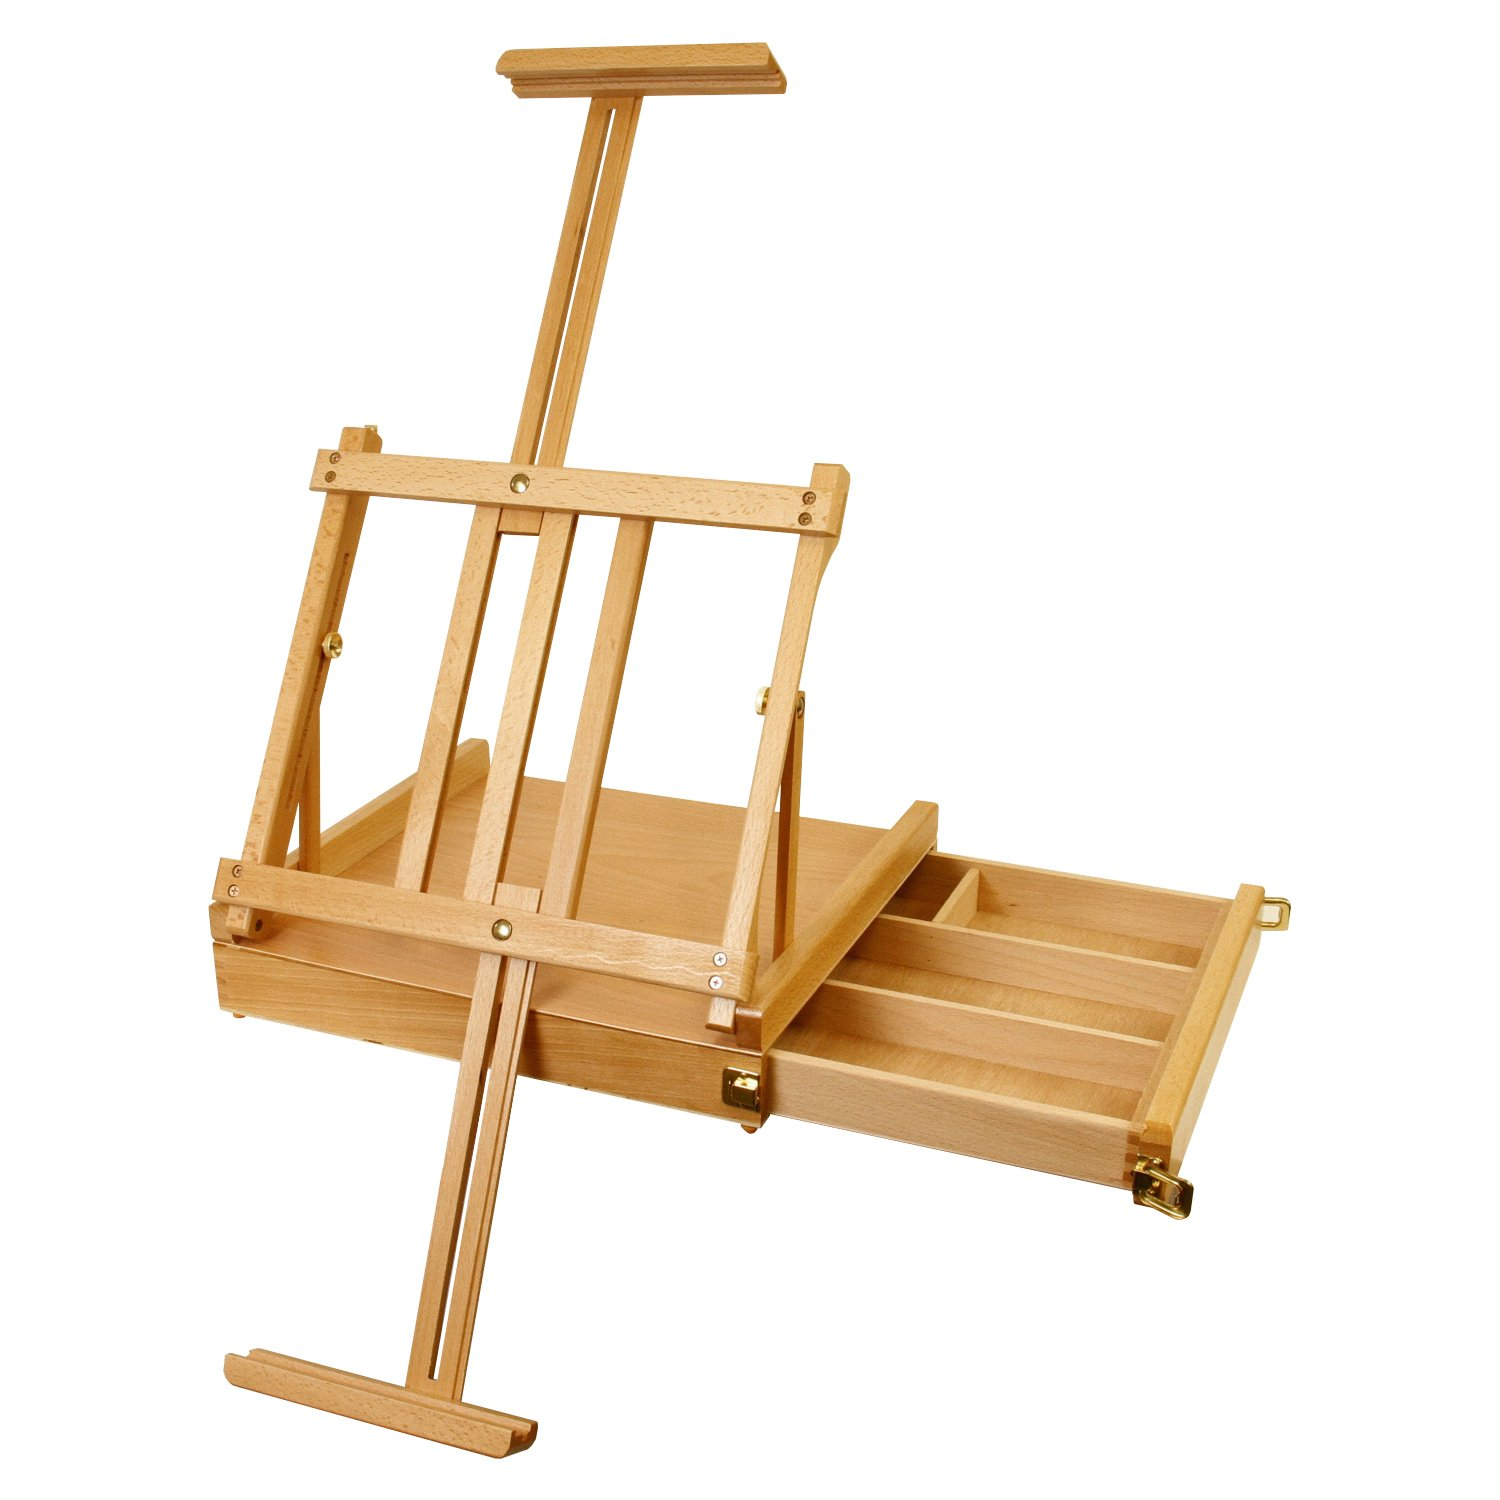 Table top drawing easel - Amazon Com Us Art Supply La Jolla 36 Inch Portable Tabletop Wood Sketchbox Easel With 4 Compartment Wooden Drawer